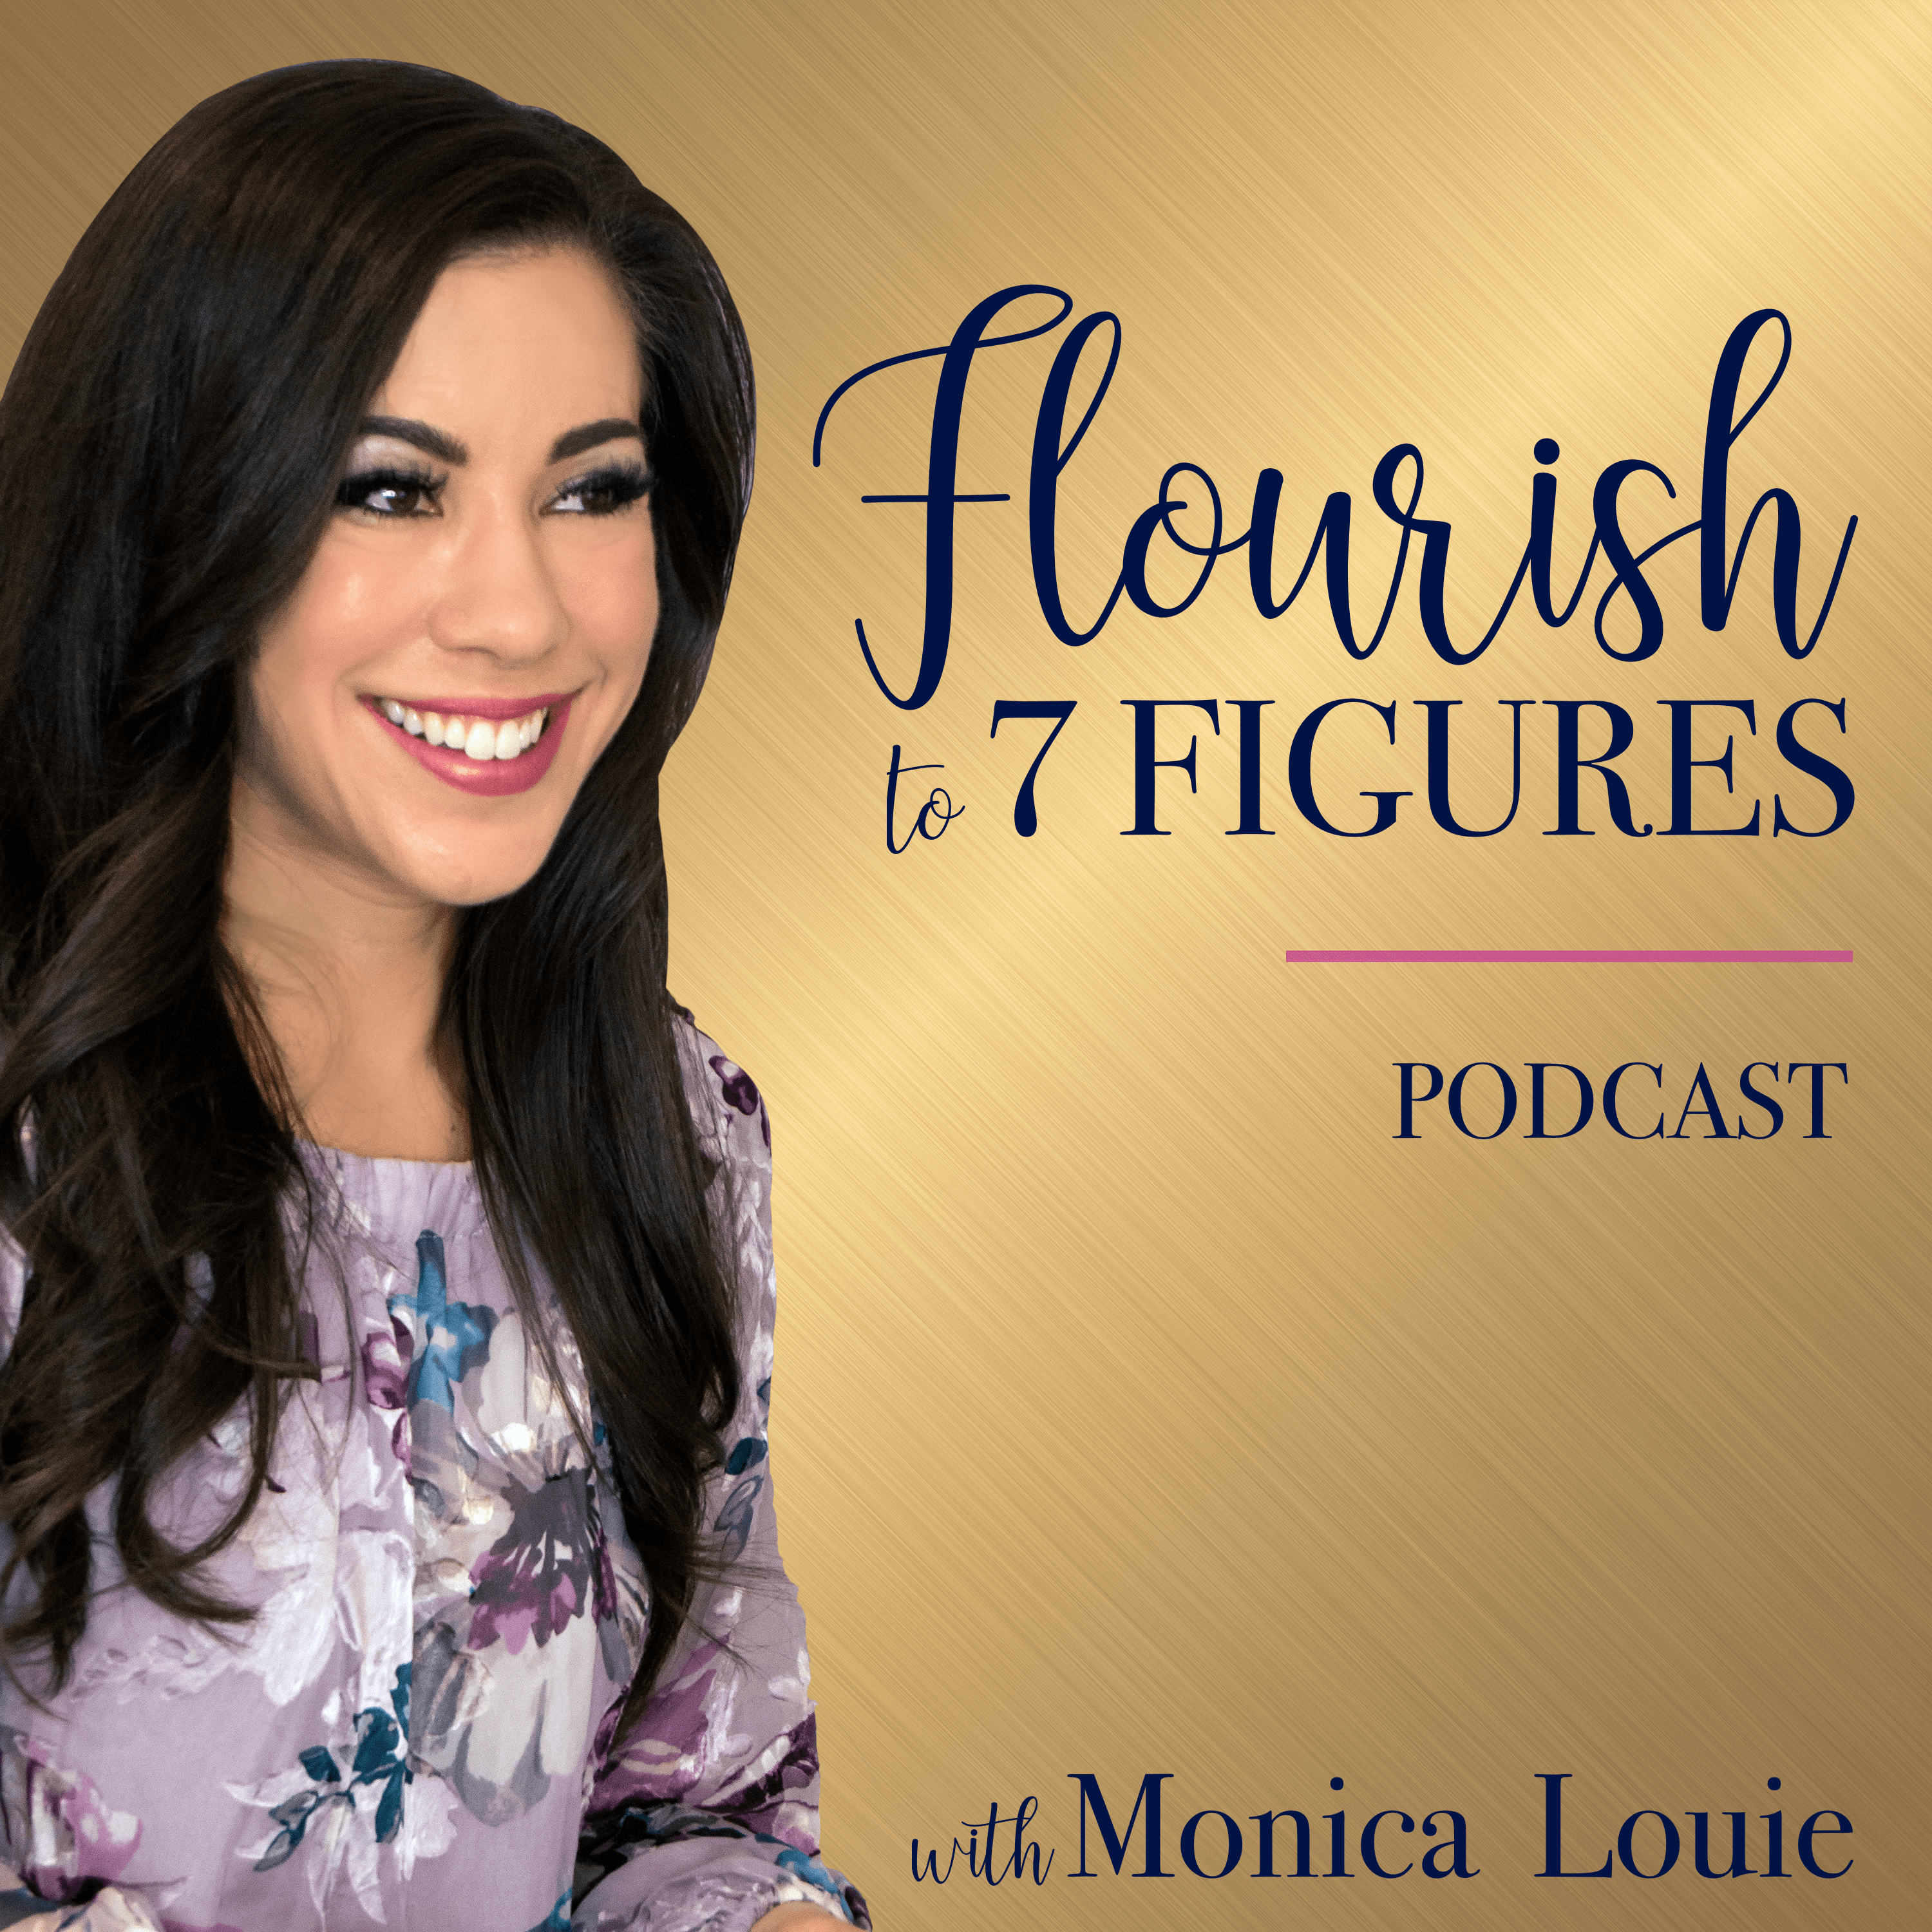 Flourish to 7 Figures Podcast: Growing Your Online Business to 7 Figures and Beyond show image